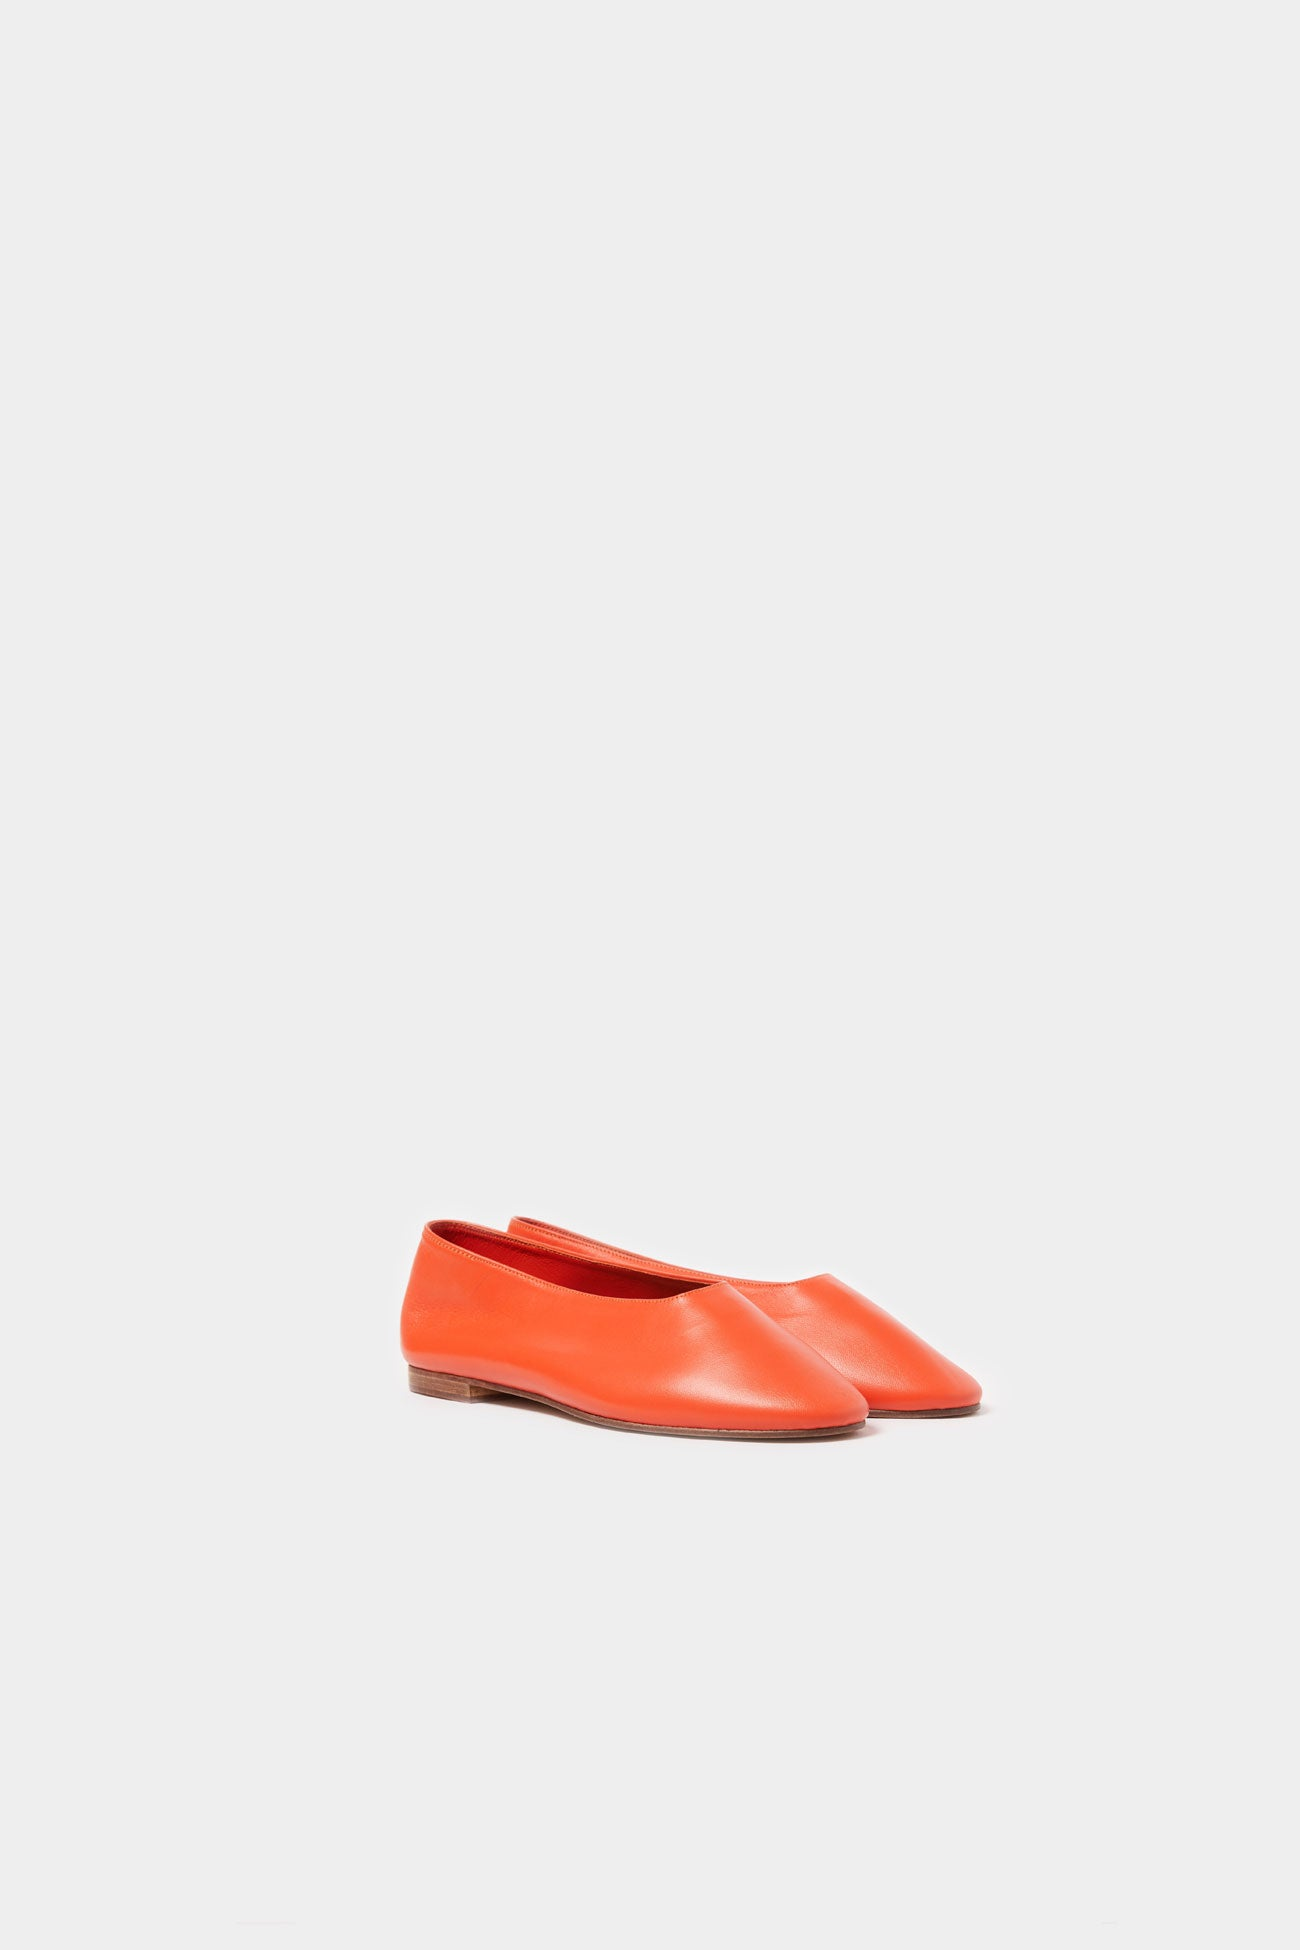 POPPY FAENA DAY LEATHER FLAT